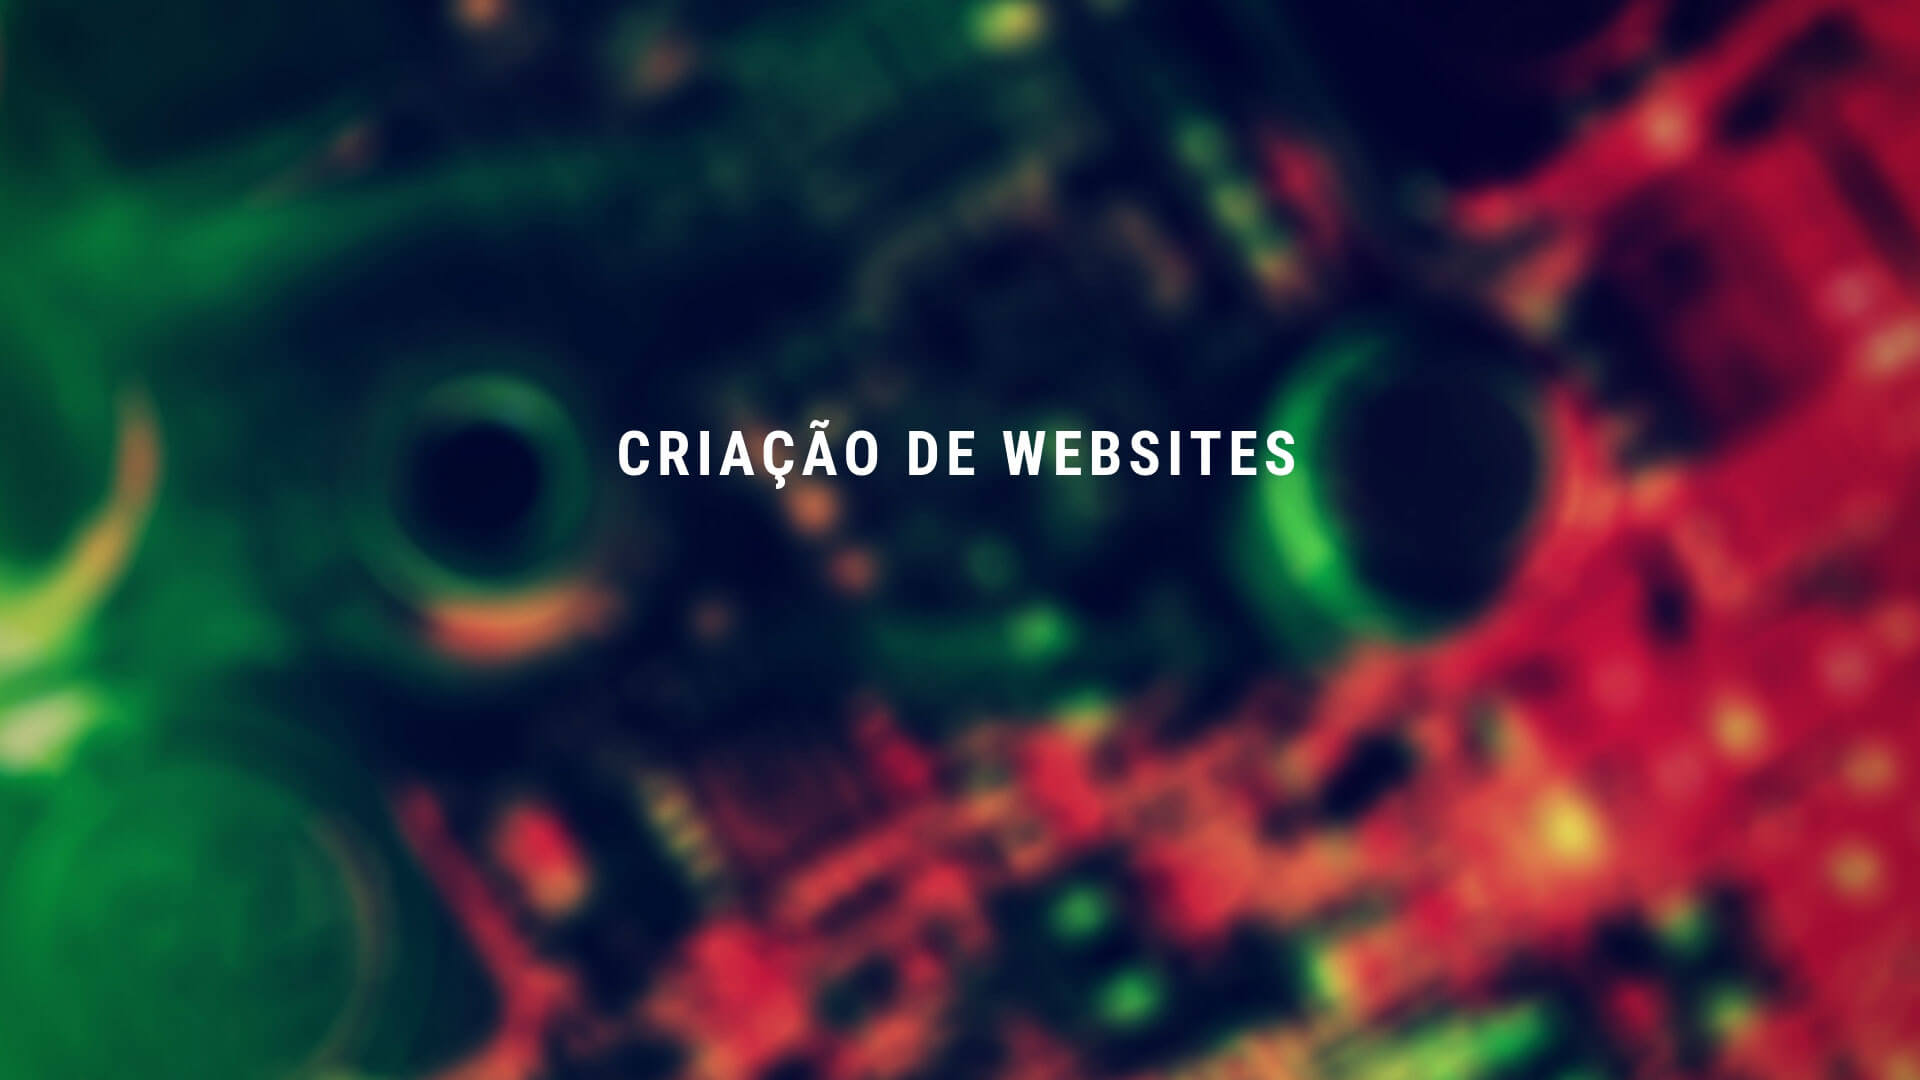 redes-criacao-de-websites